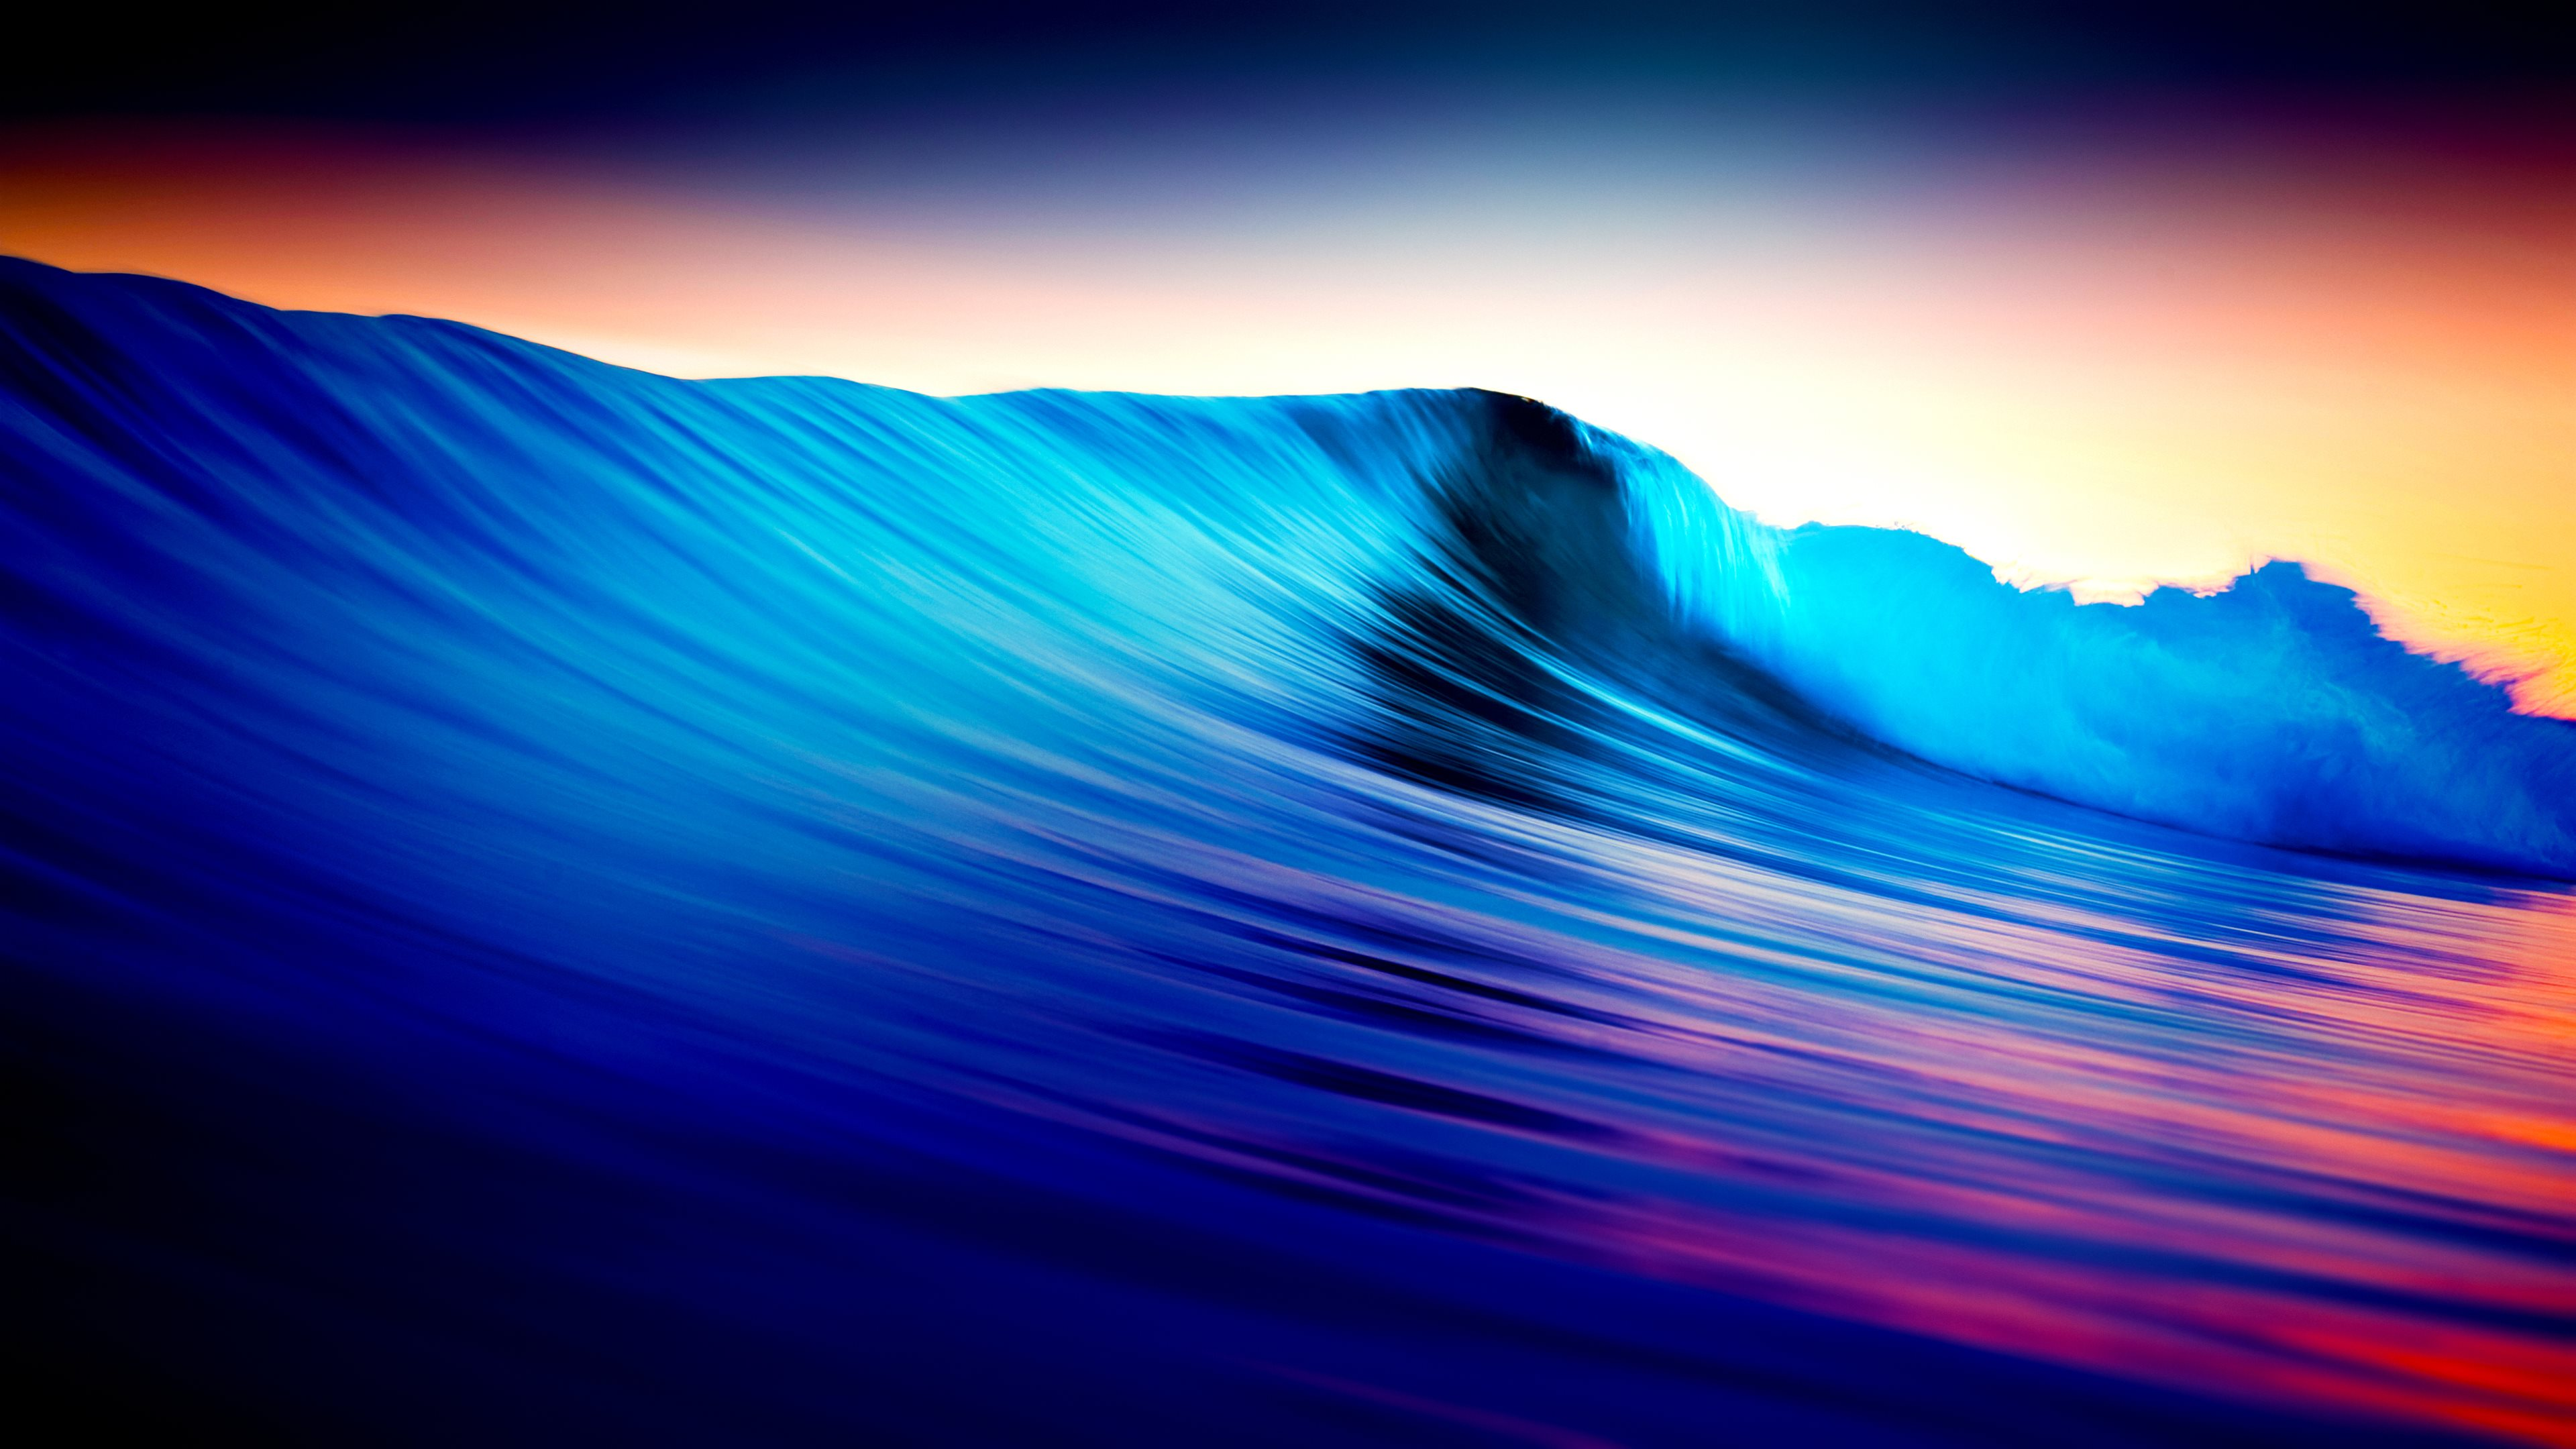 Ultra 4K Wallpaper 4 Rolling Waves Mod 3840x2160